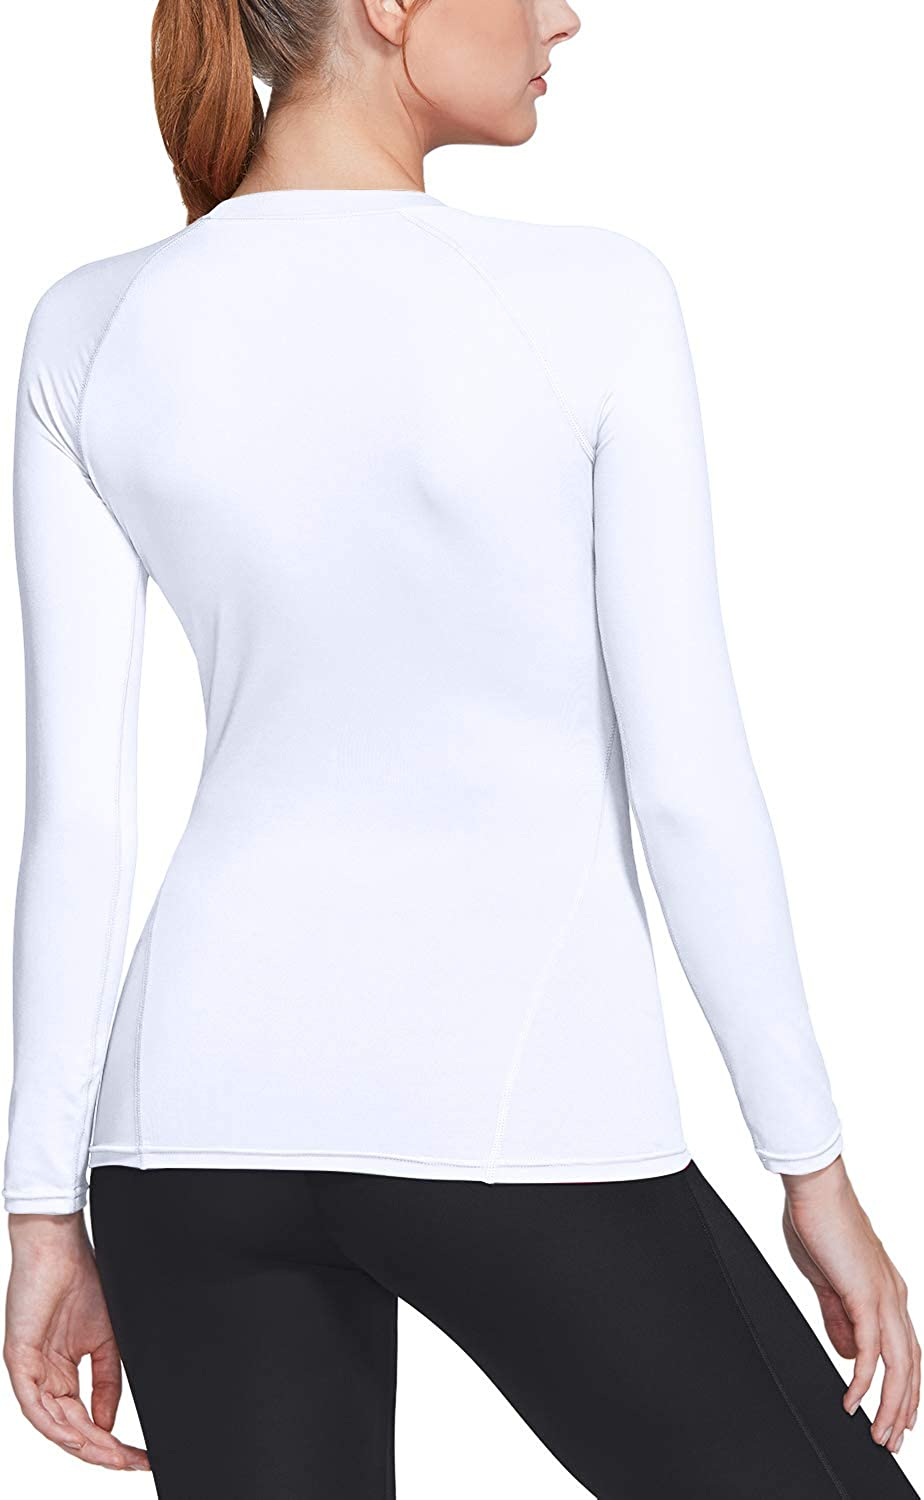 Athletic Exercise Gym Yoga Shirts Cool Dry Fit Long Sleeve Workout Tops TSLA 1 or 3 Pack Womens Sports Compression Shirt